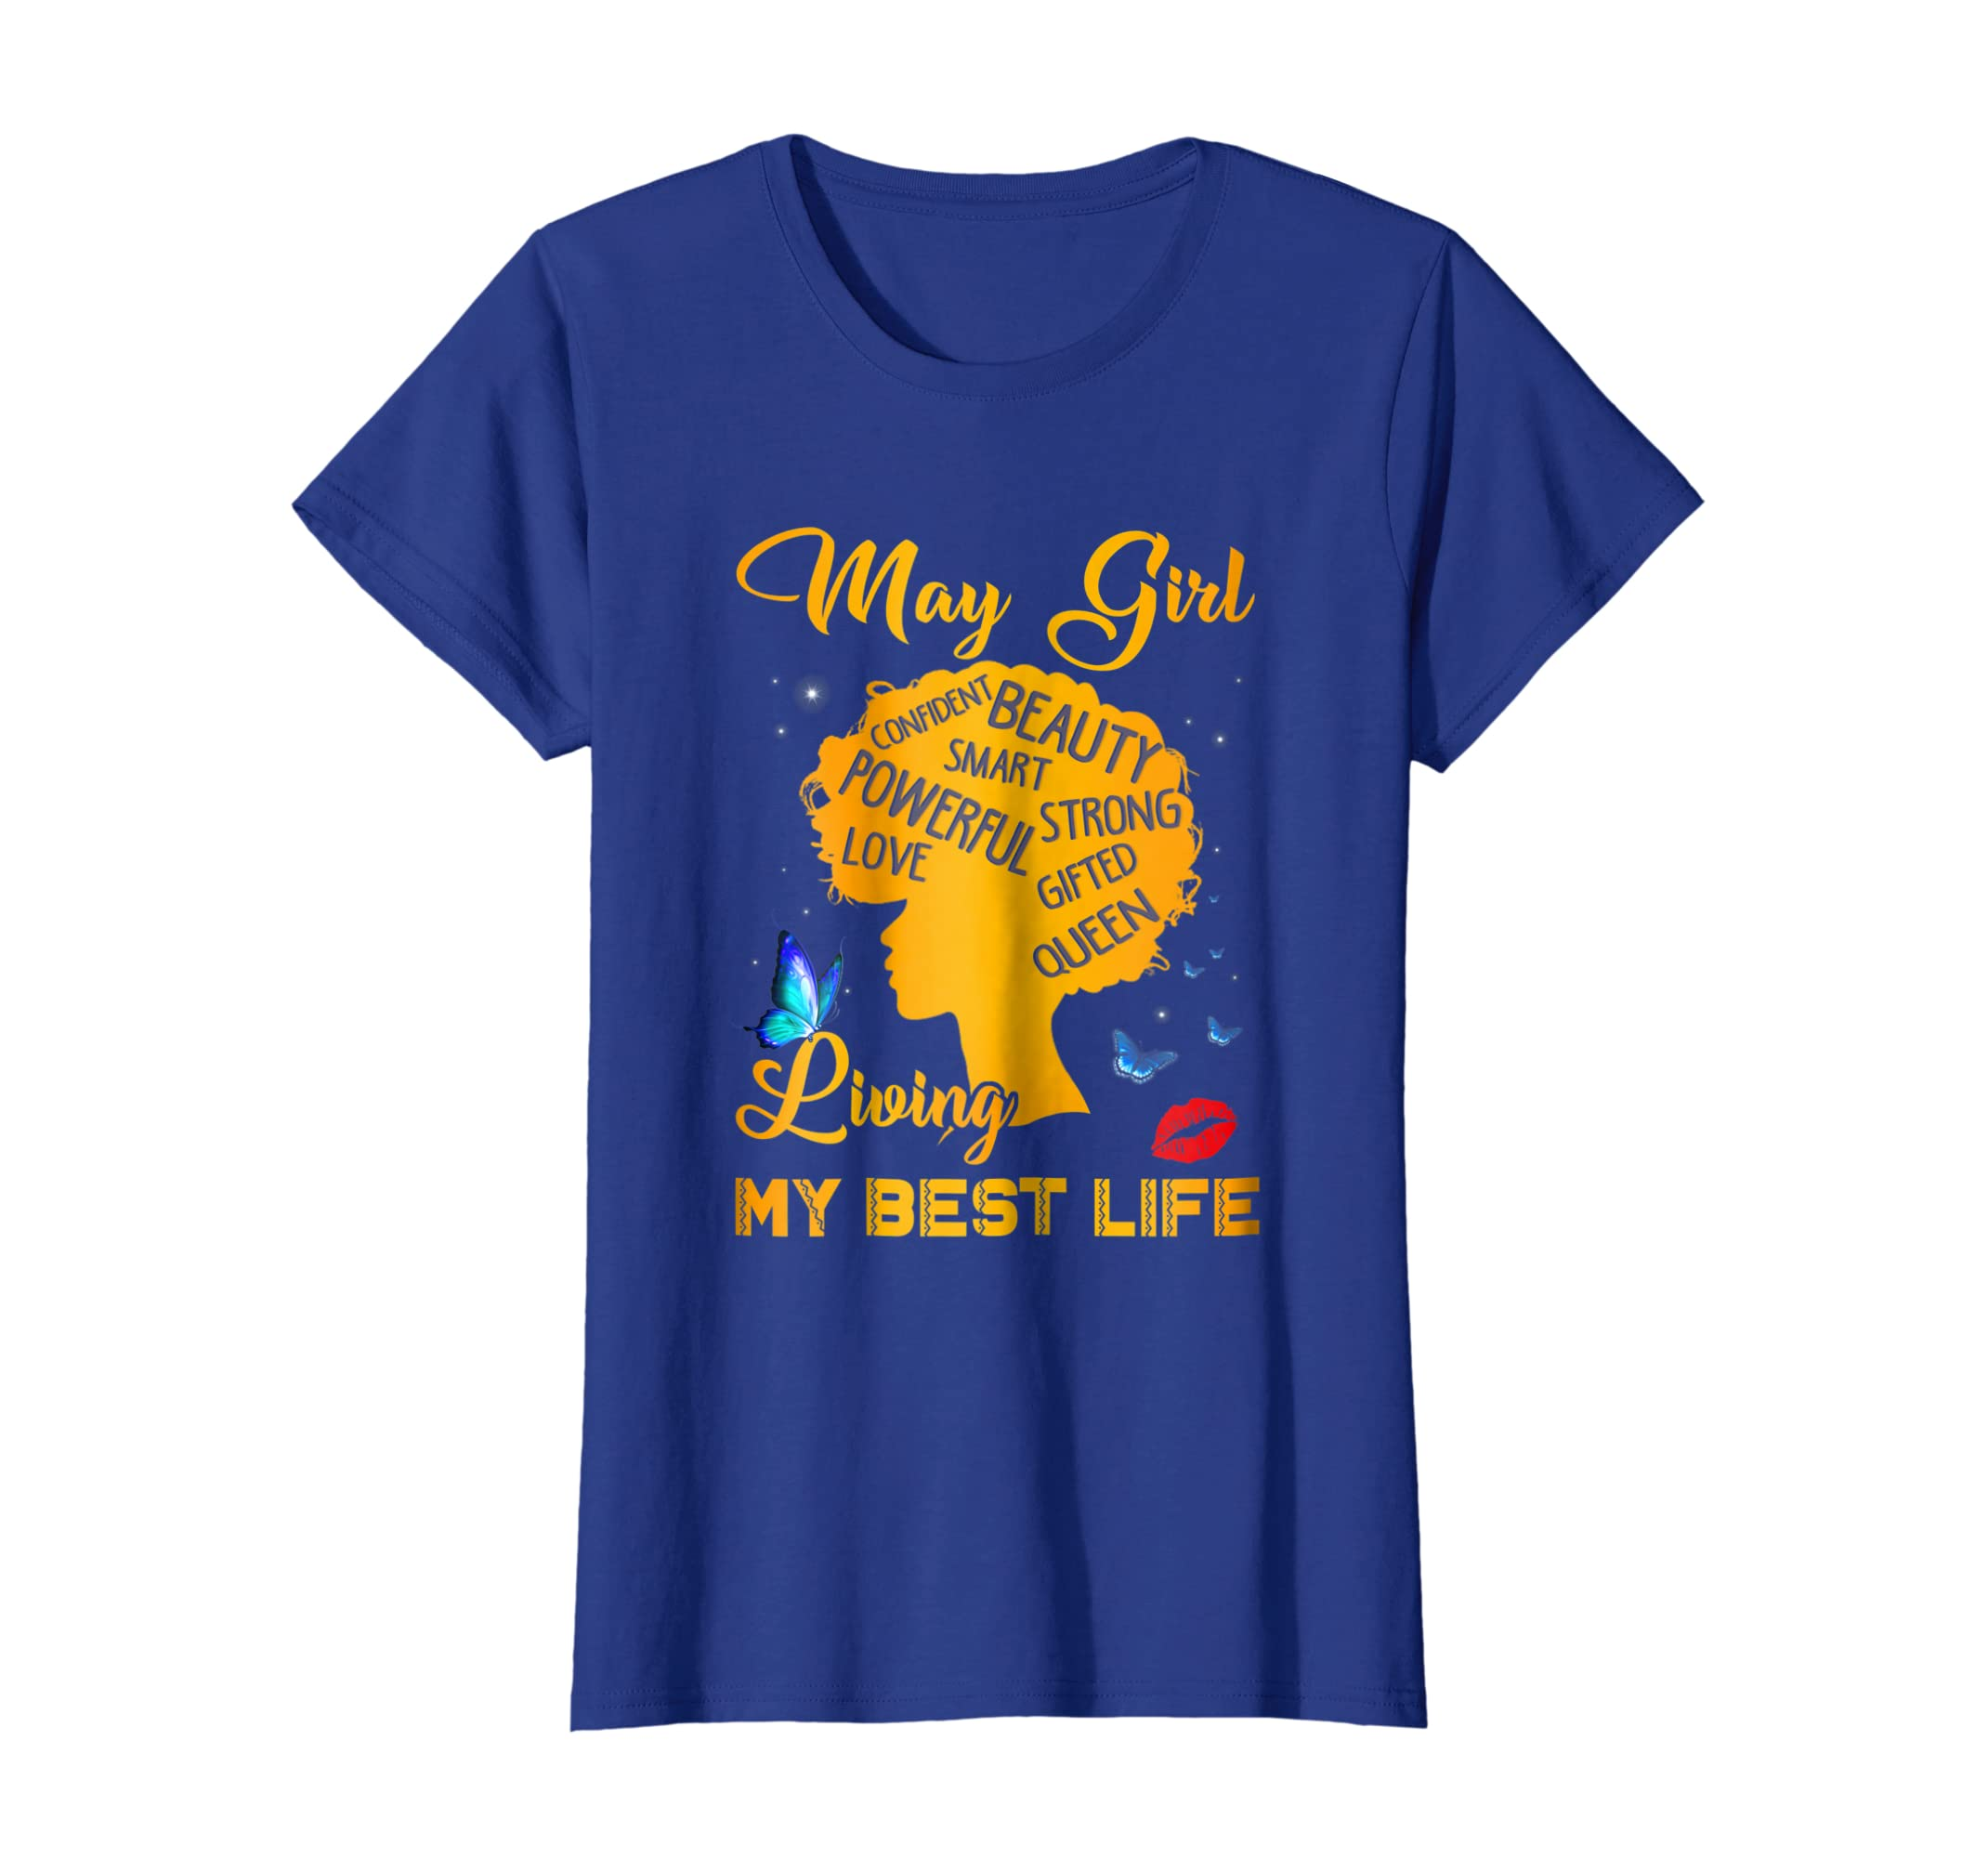 966a6d1e Amazon.com: May girl living my best life: Clothing